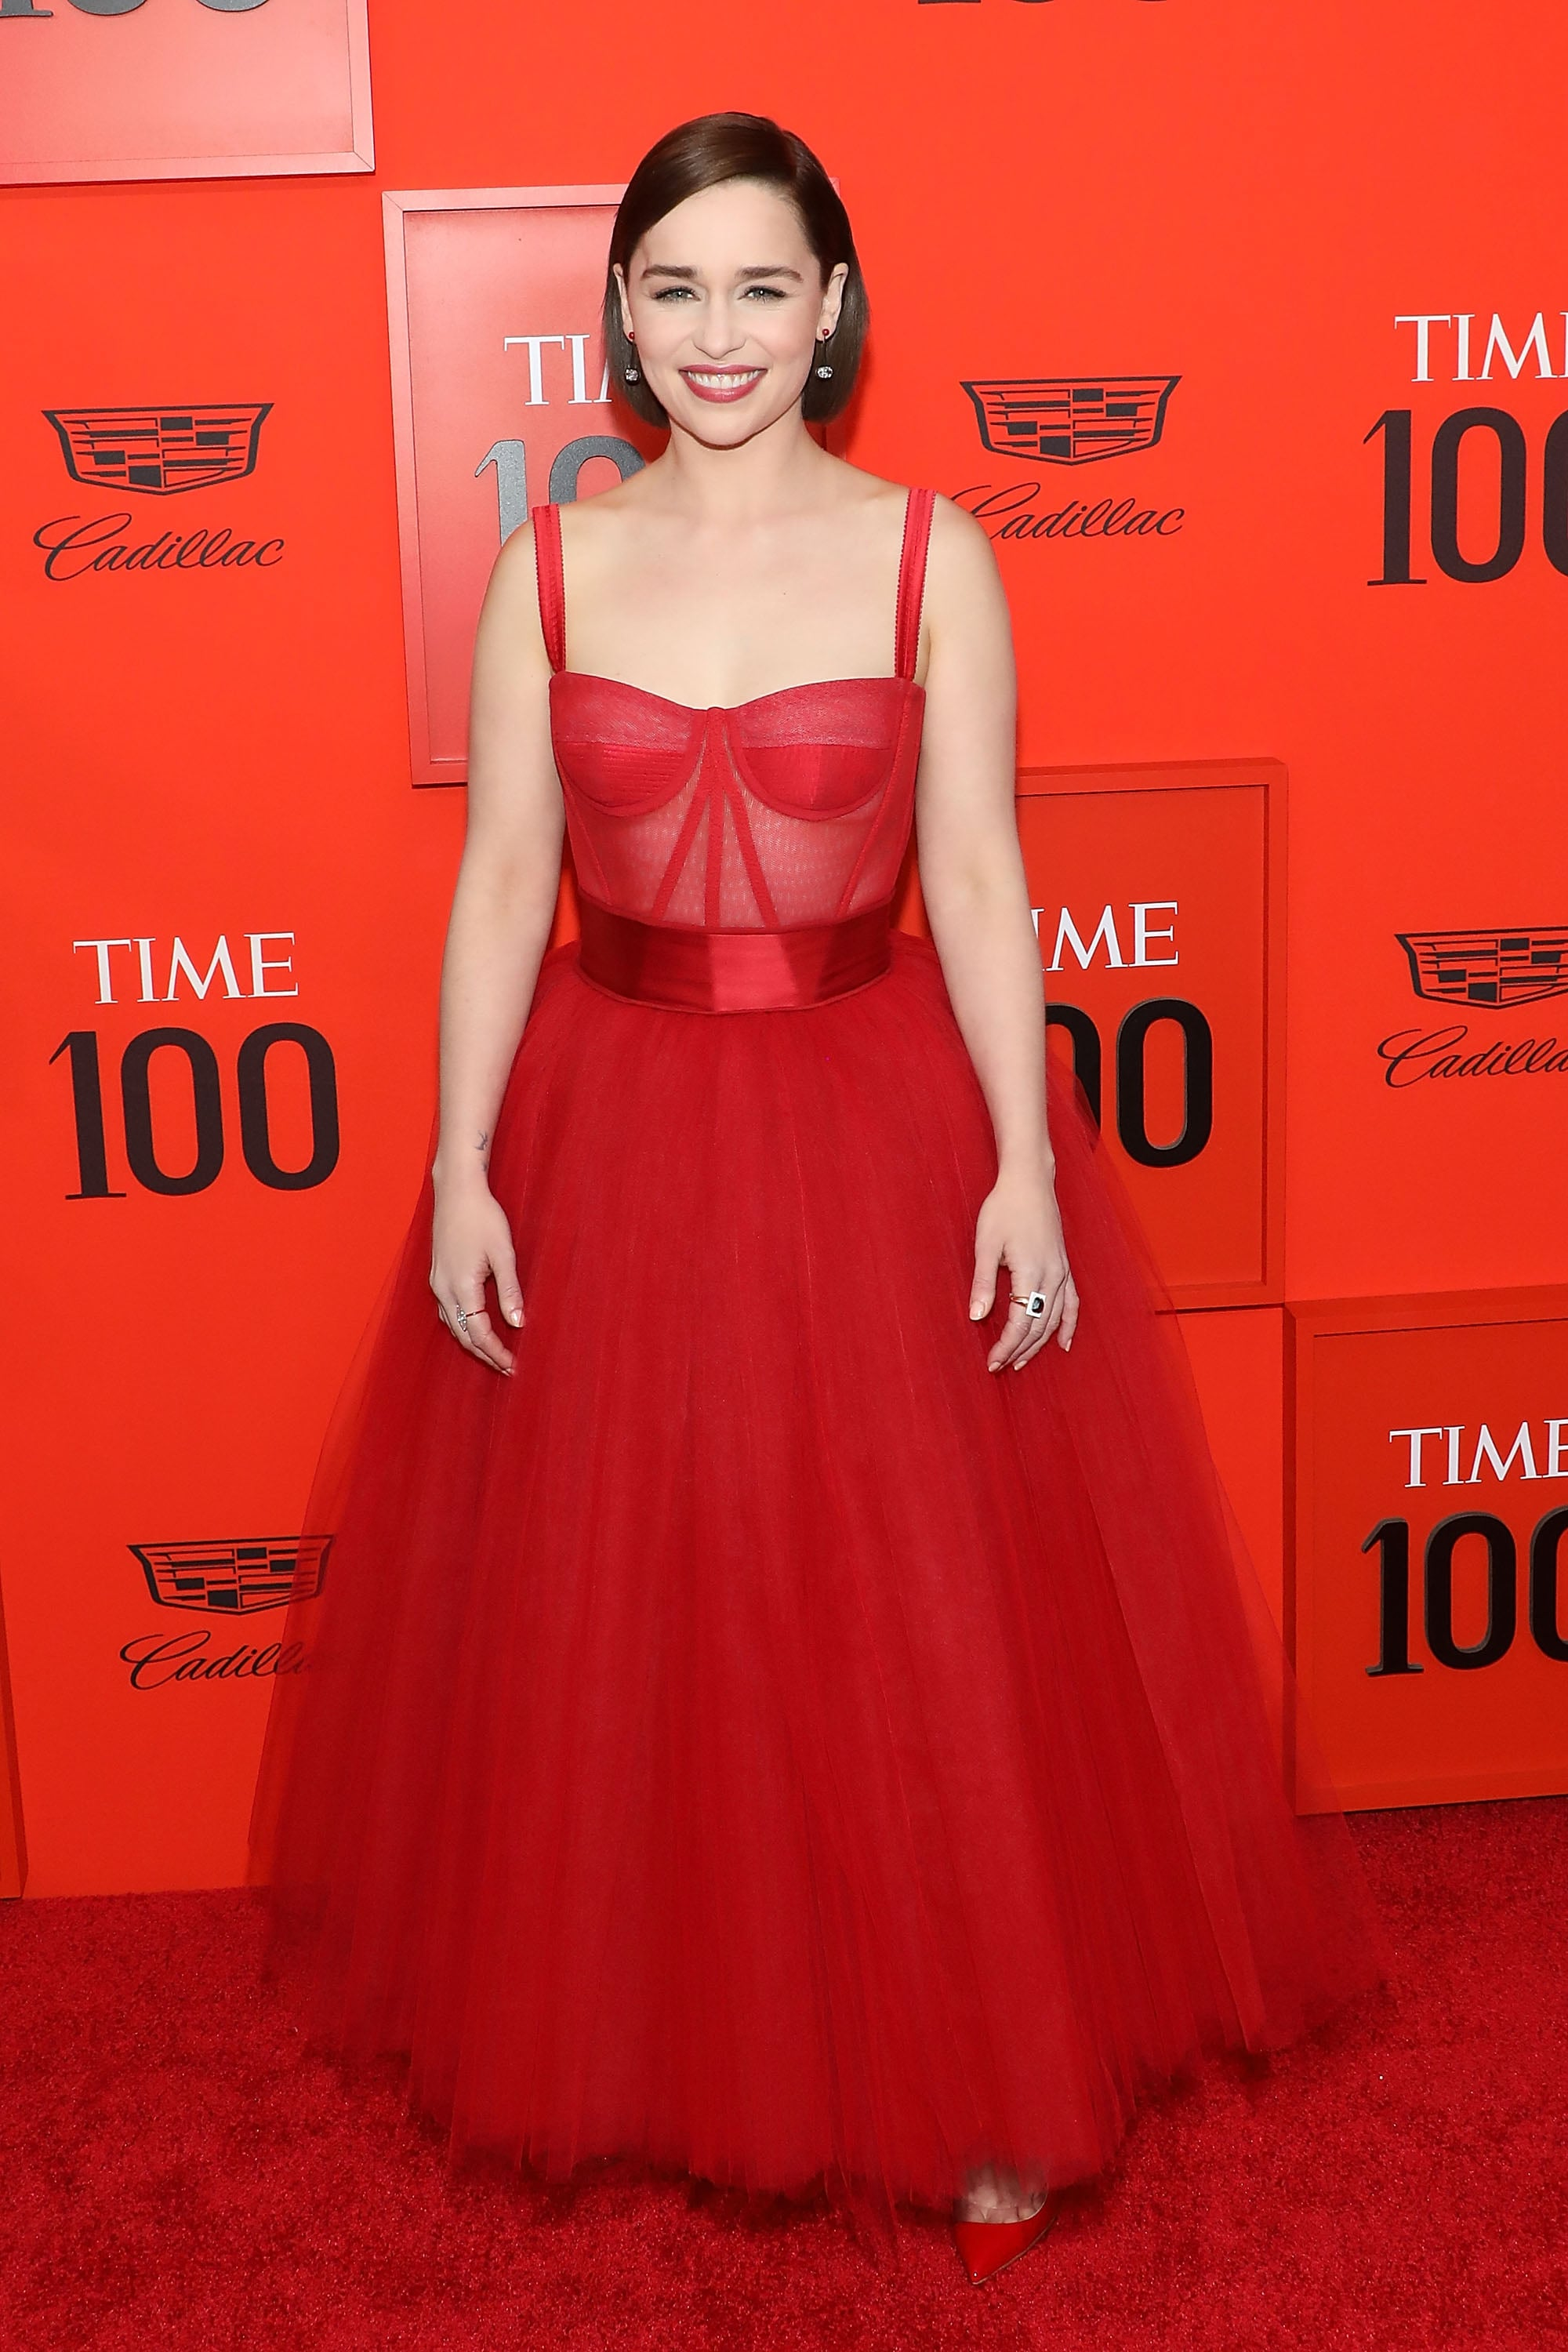 \u0026 Gabbana Dress 2019 Time 100 Gala